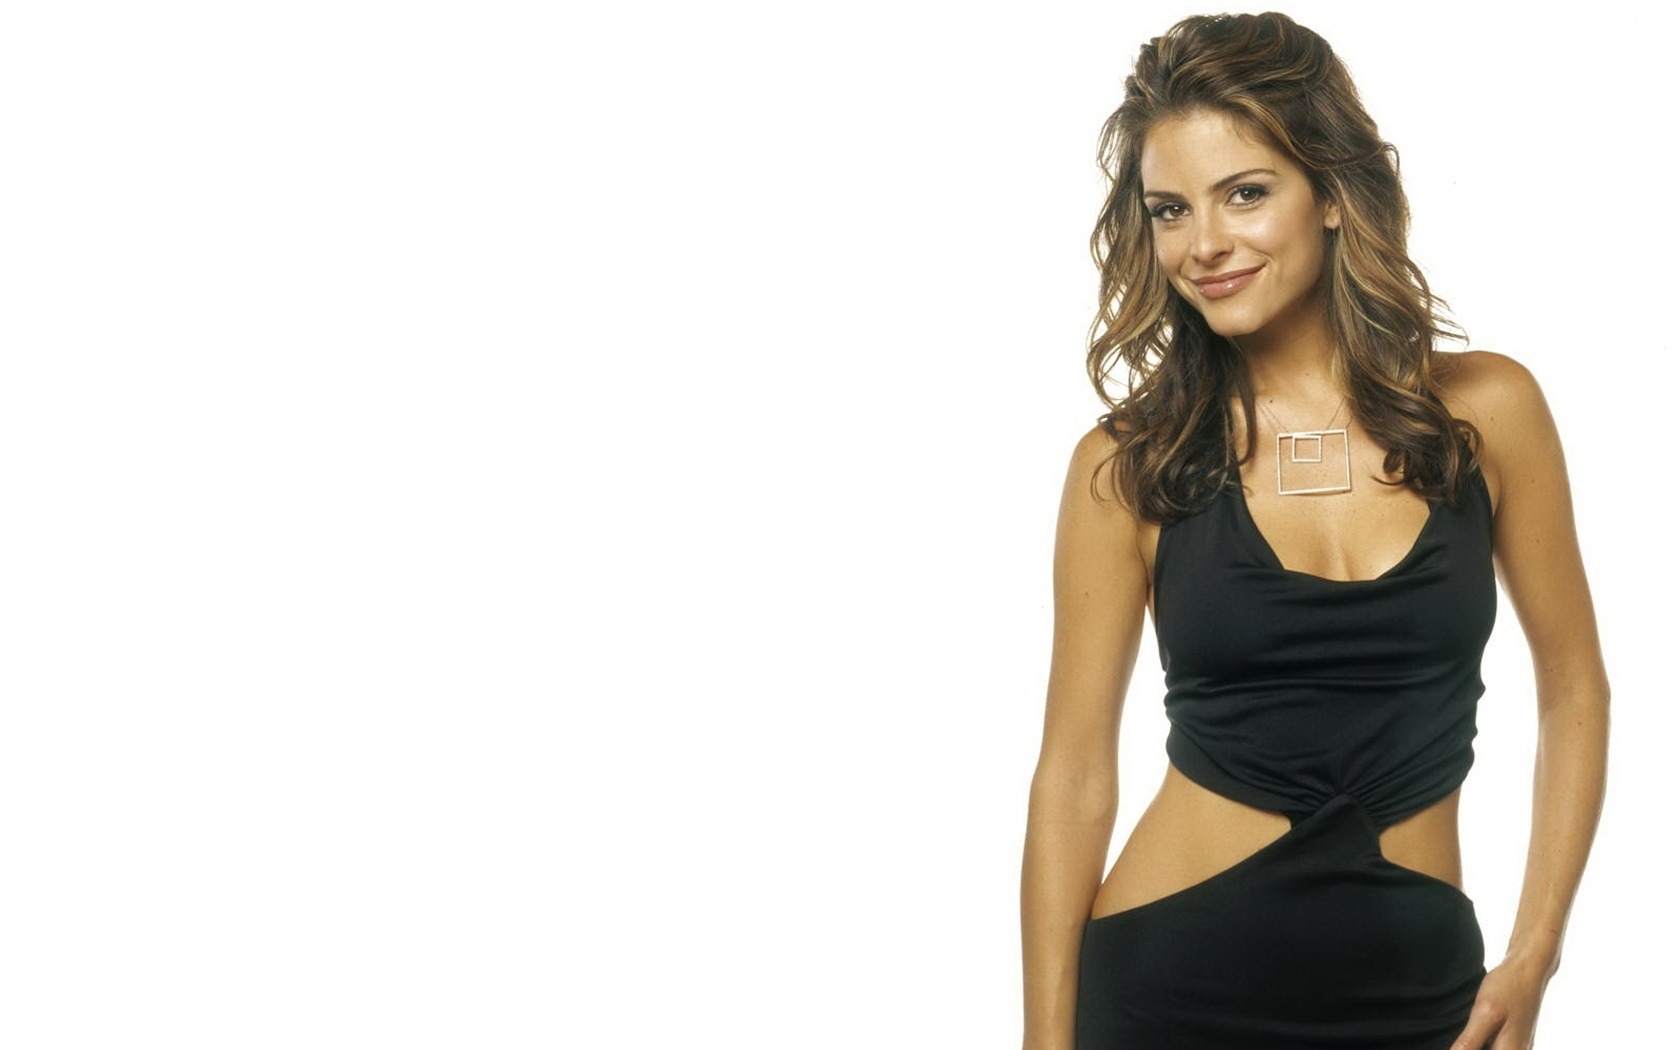 Maria Menounos #010 - 1680x1050 Wallpapers Pictures Photos Images